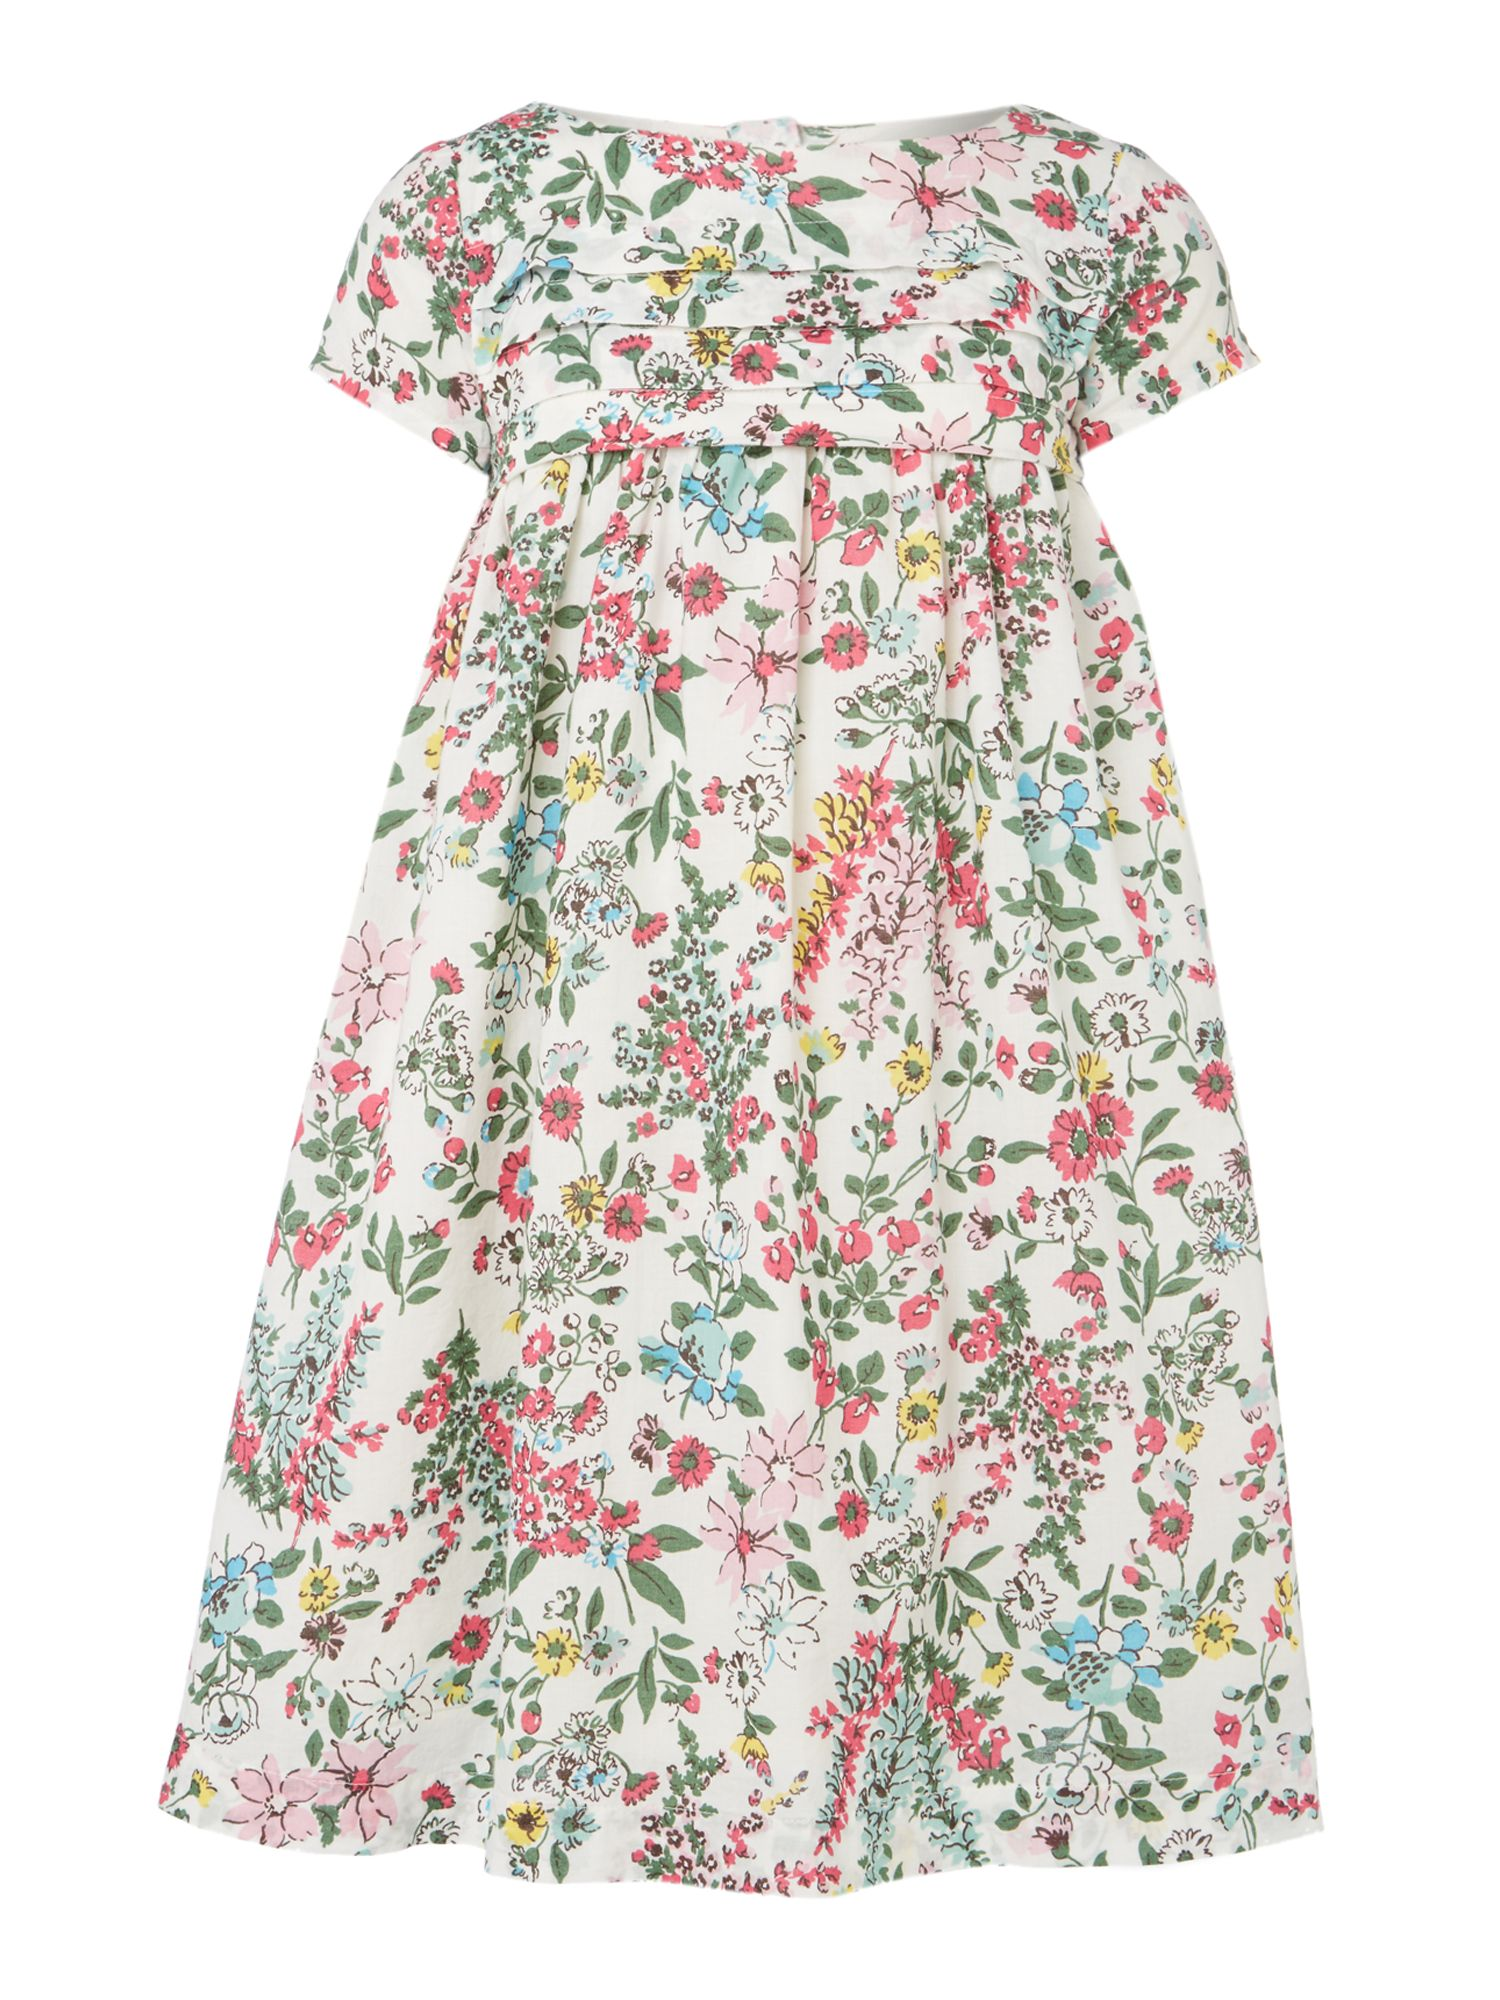 Girls pleated floral smock dress